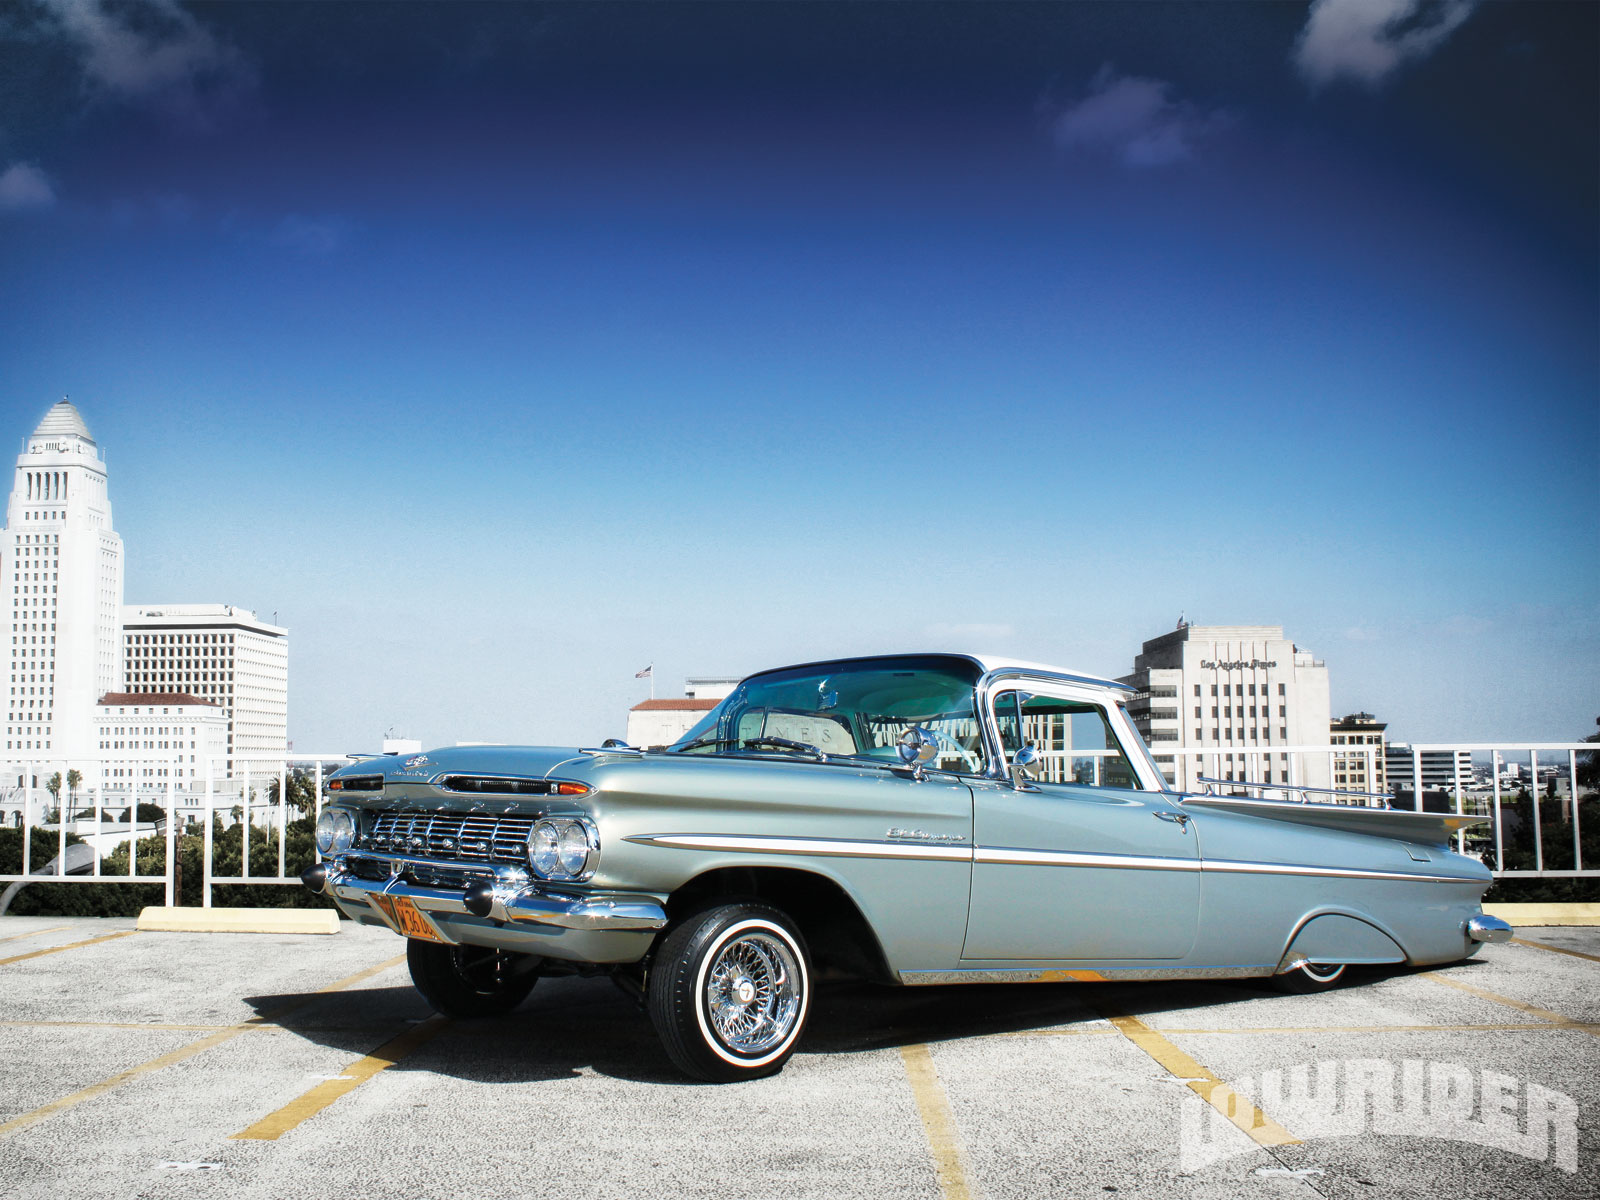 1959 Chevrolet El Camino Wallpaper